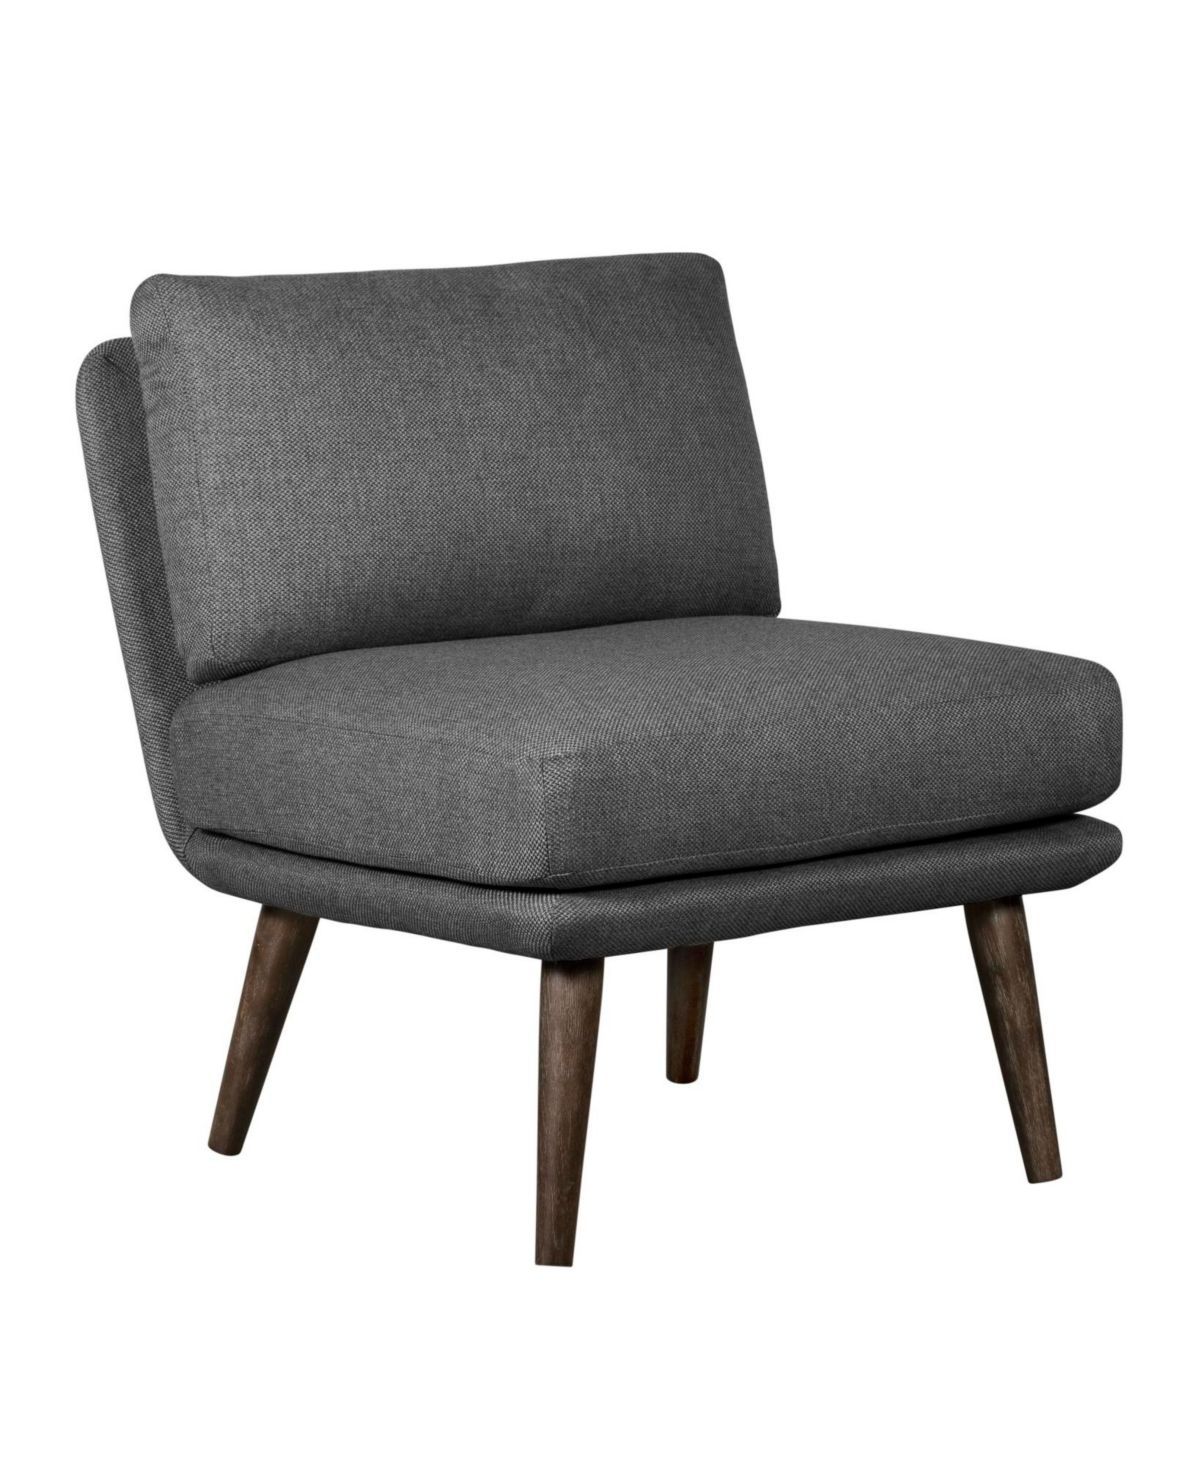 Tommy Hilfiger Pelham Armless Accent Chair Reviews Chairs